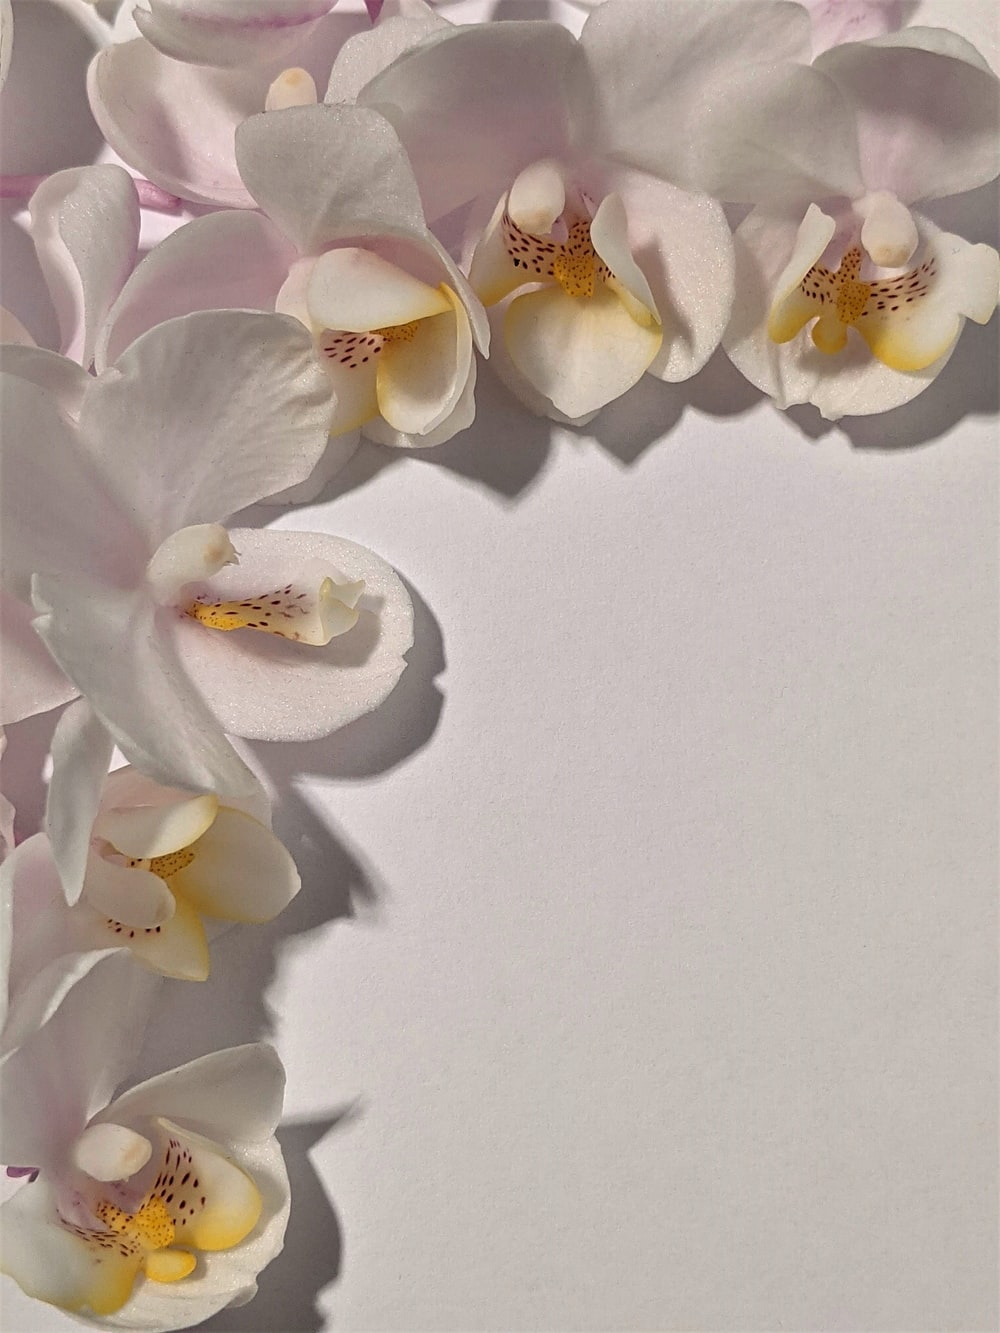 white moth orchids on white surface